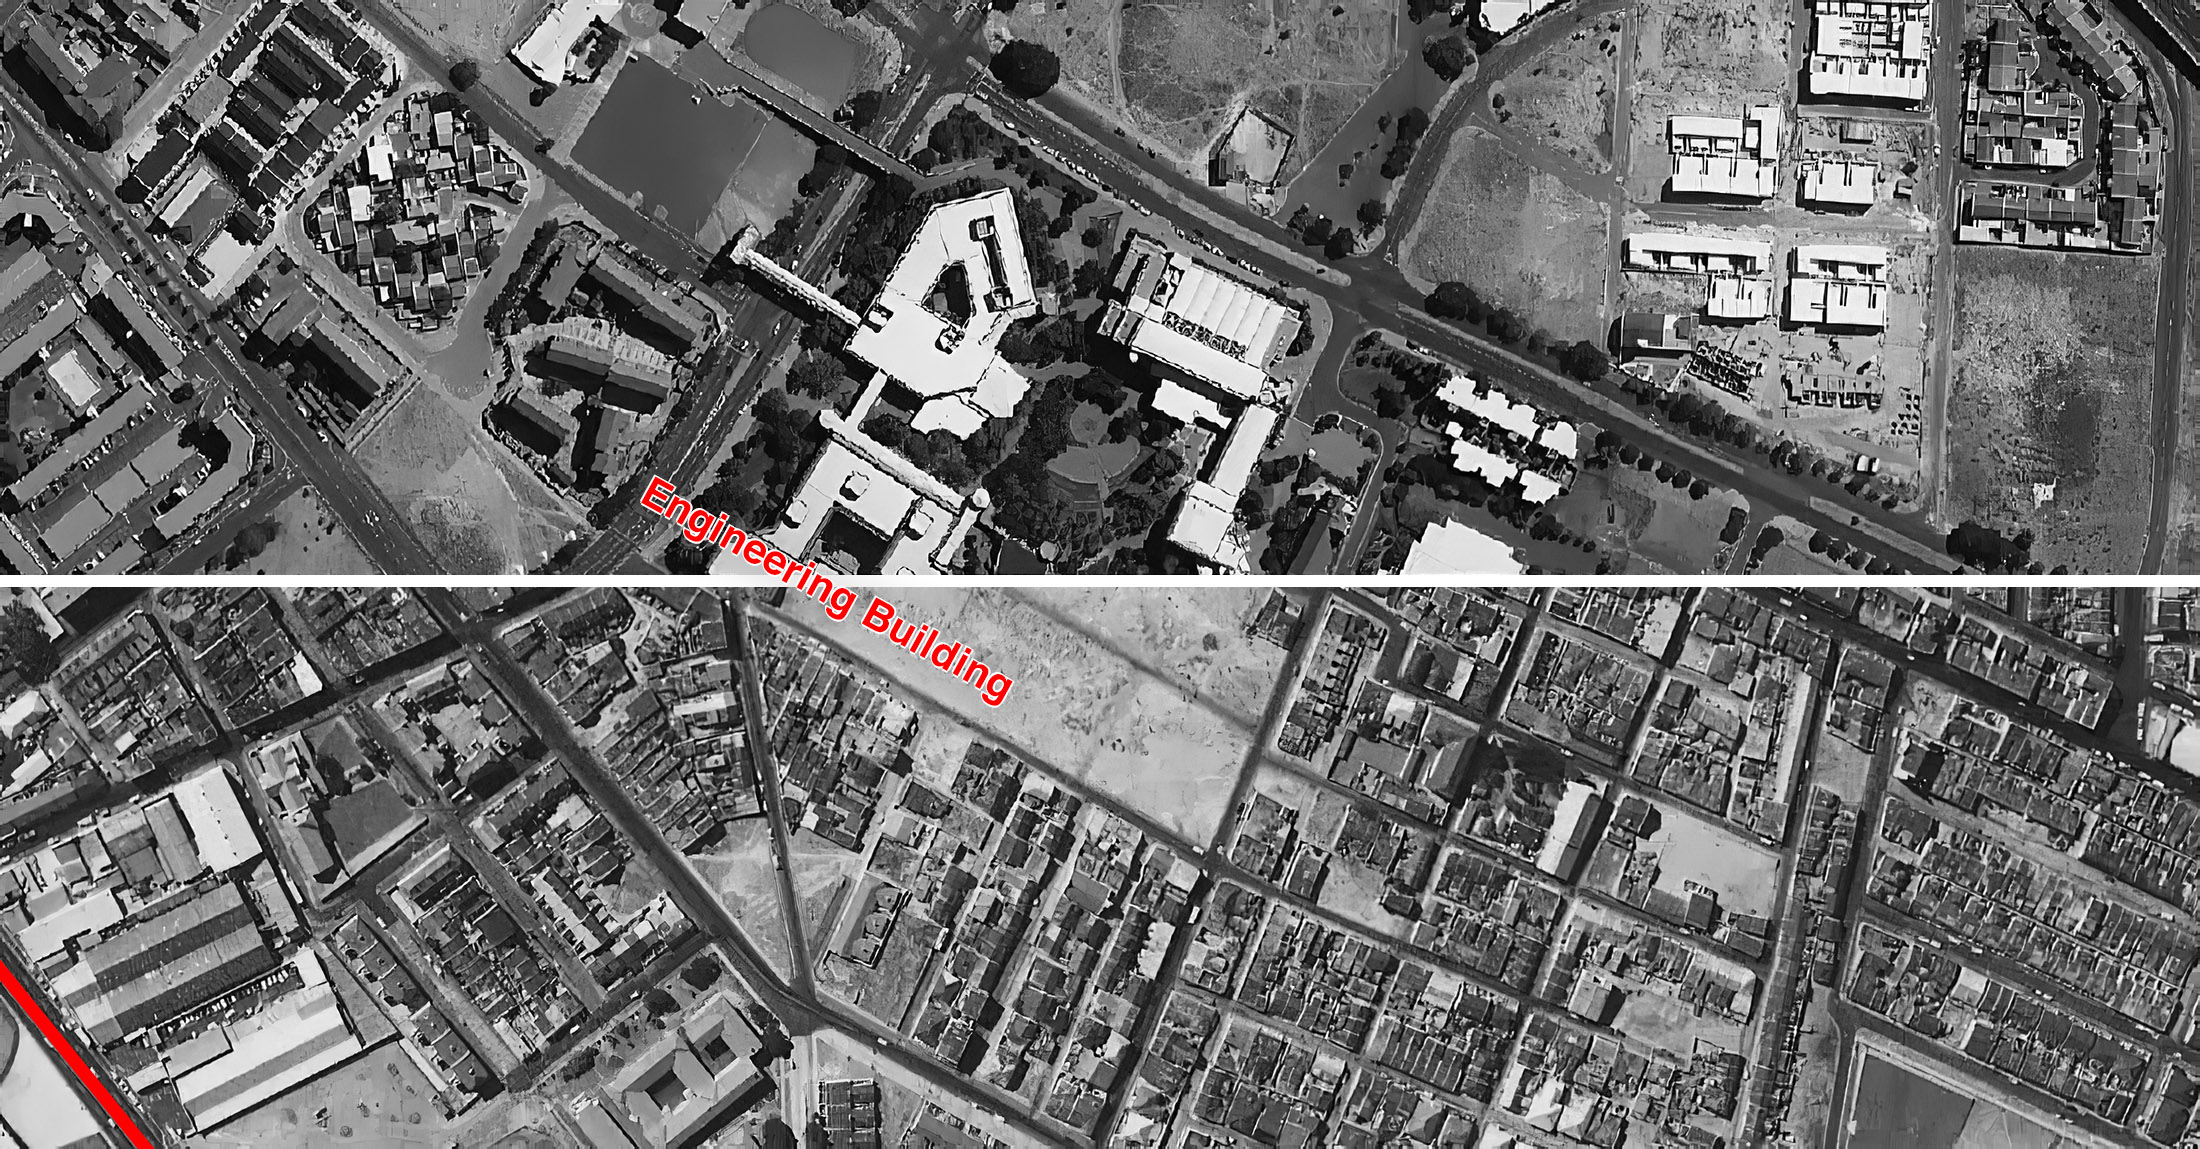 Figure 11. District Six detail, 2011 (top) over District Six map, 1968 (bottom)